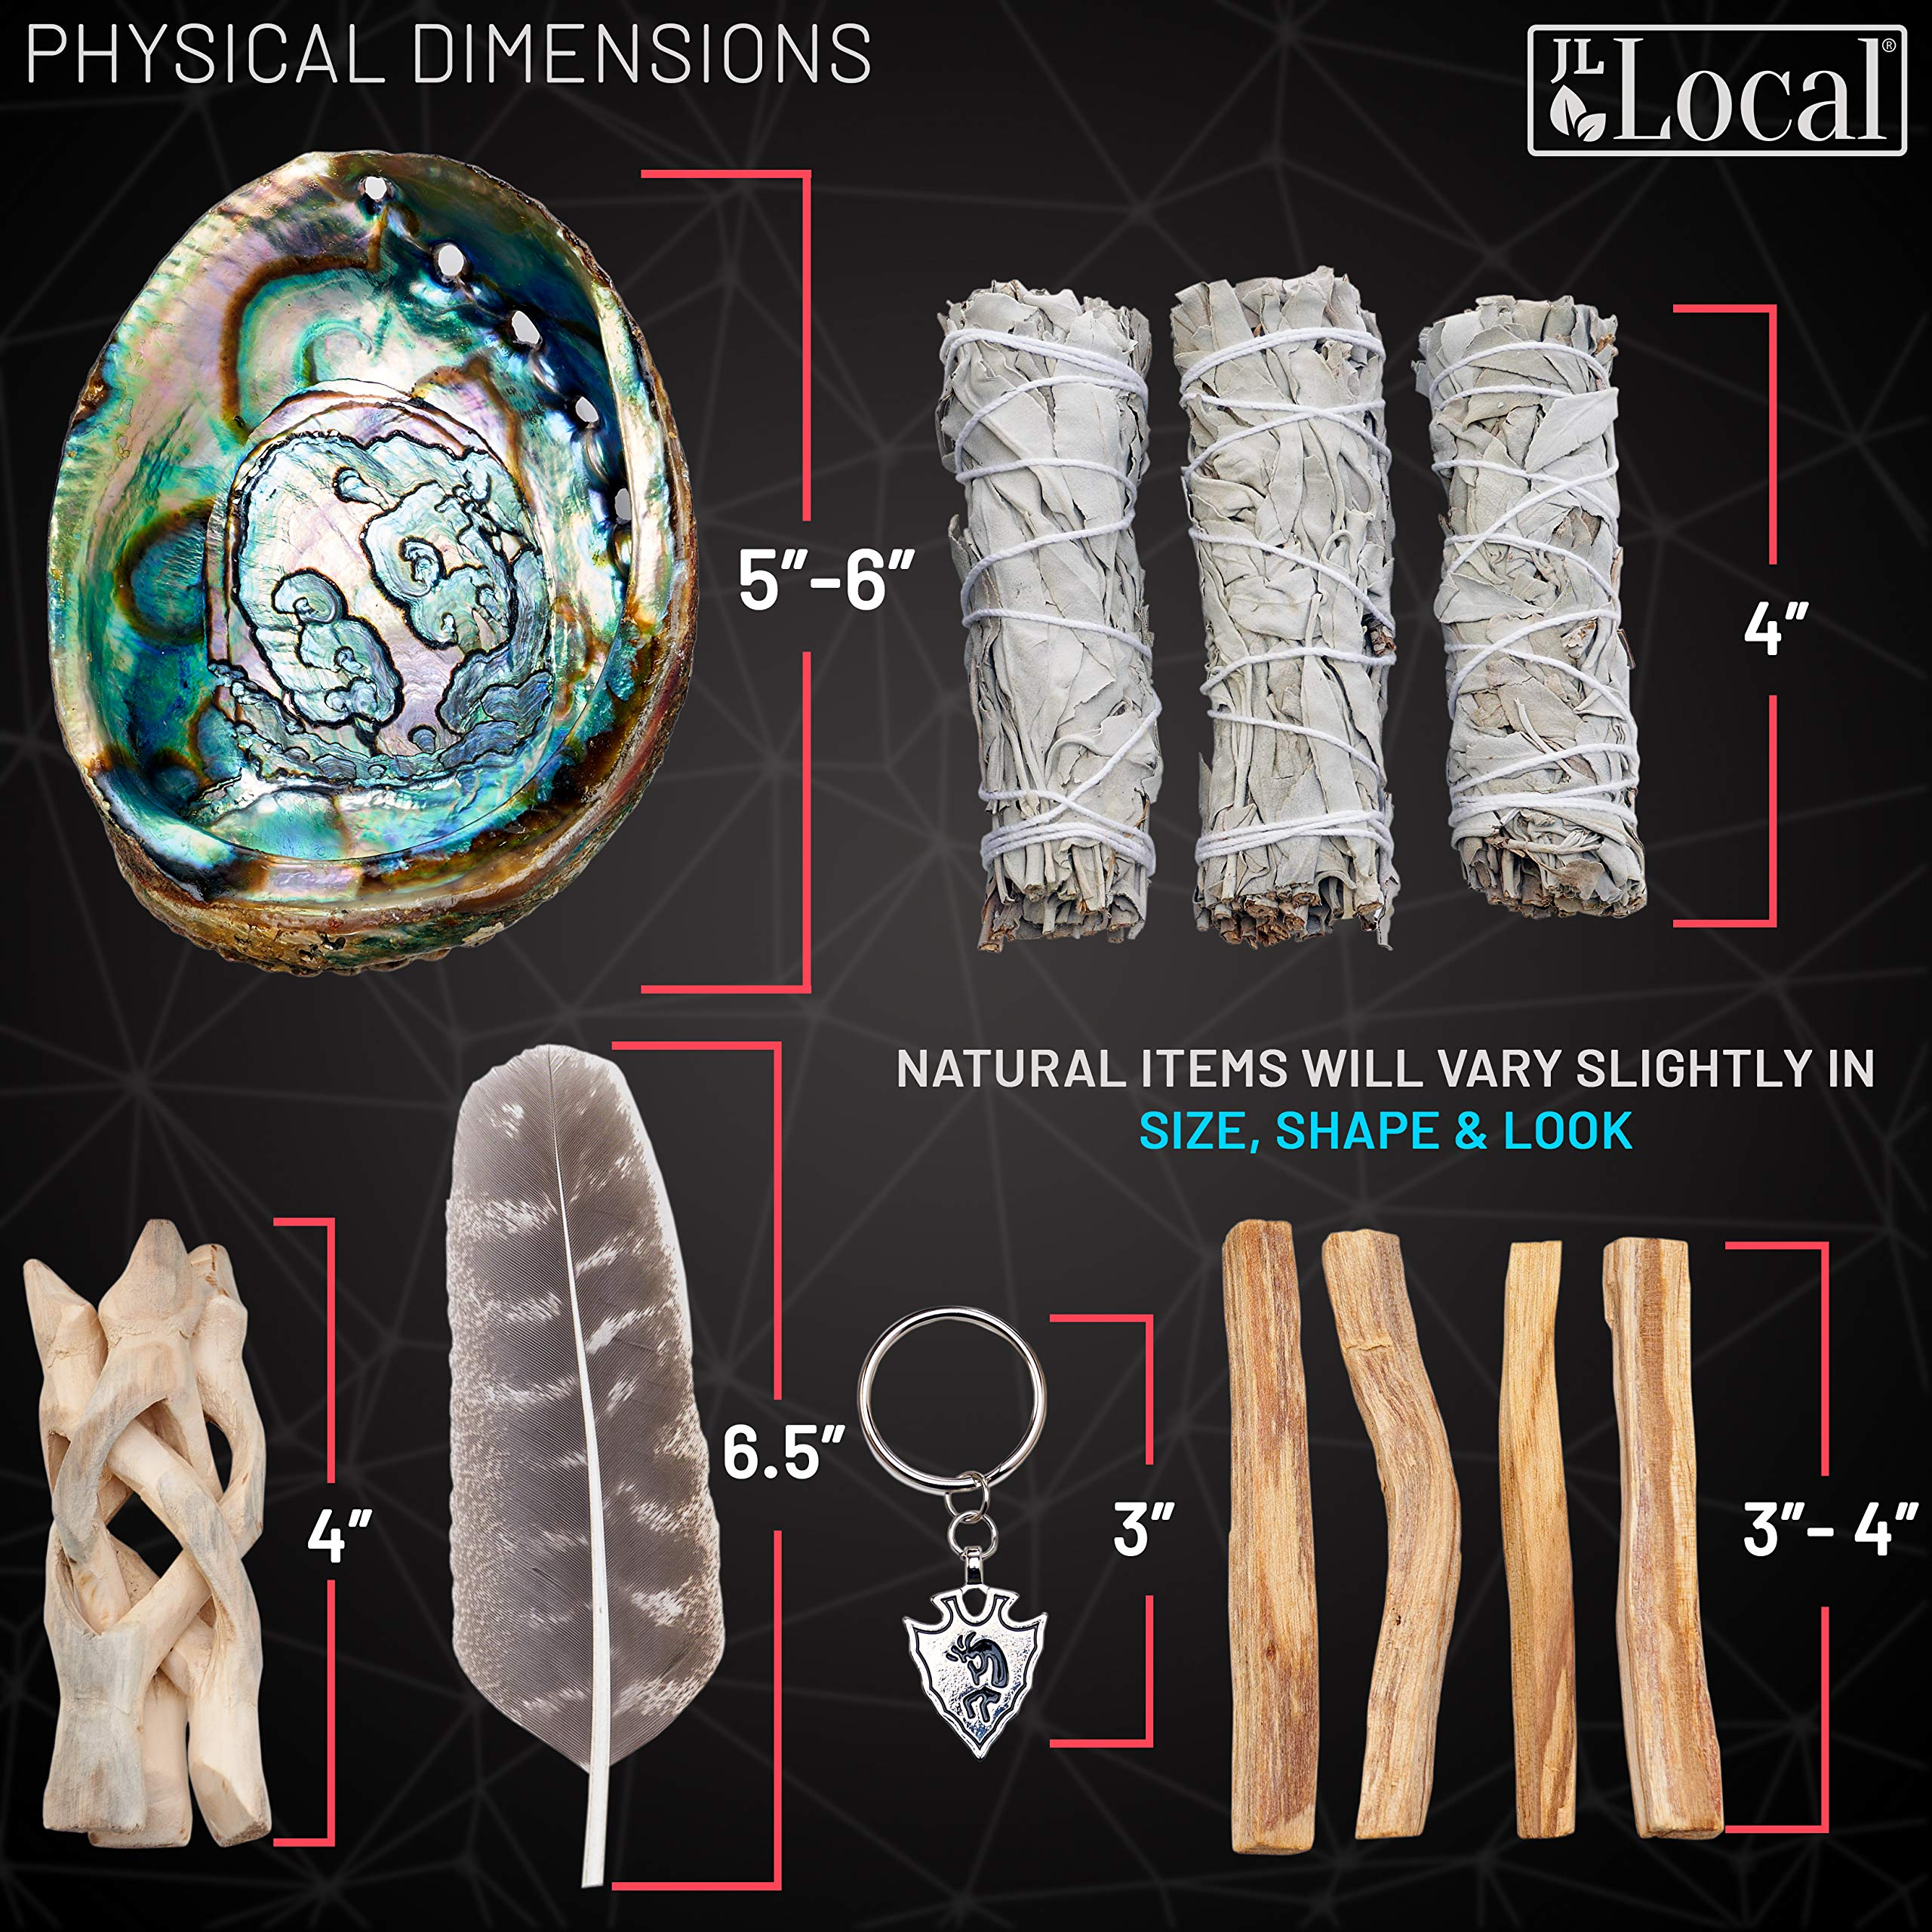 JL Local Smudge Kit - Sage, Palo Santo, Abalone Shell, Feather + More! Yoga, Meditating, Purify, Cleanse by JL Local (Image #4)